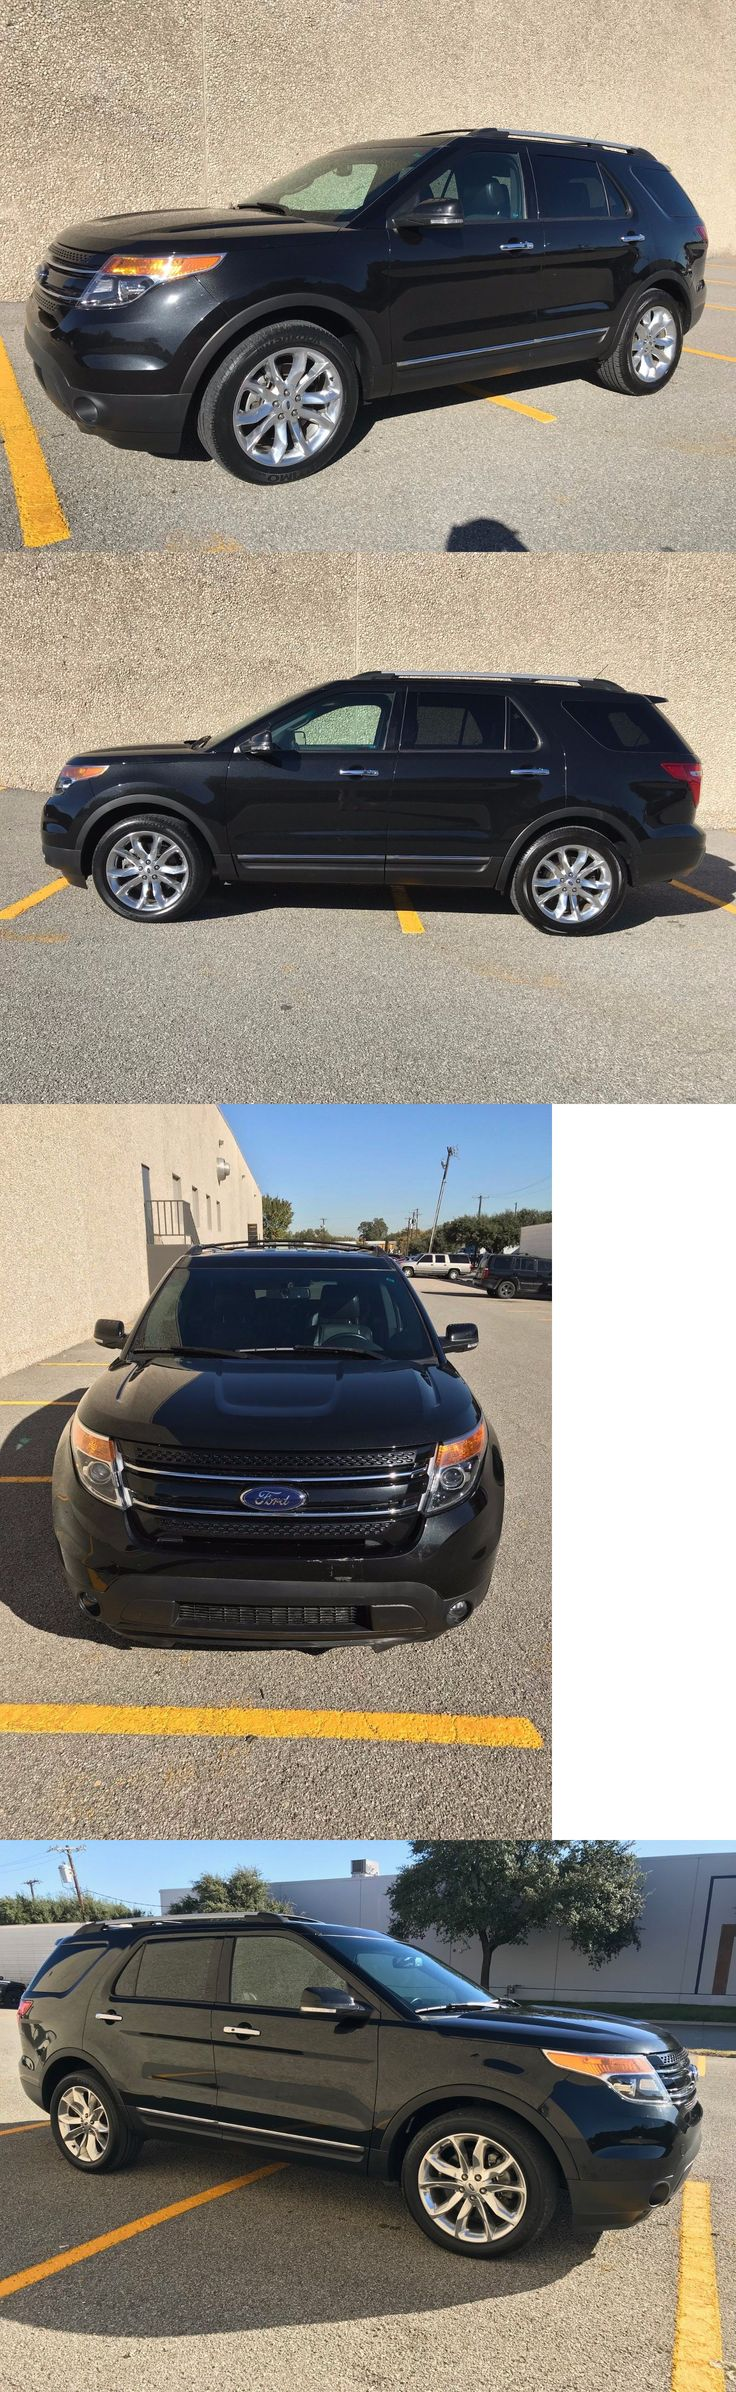 Best 25 2014 ford explorer limited ideas on Pinterest  Ford